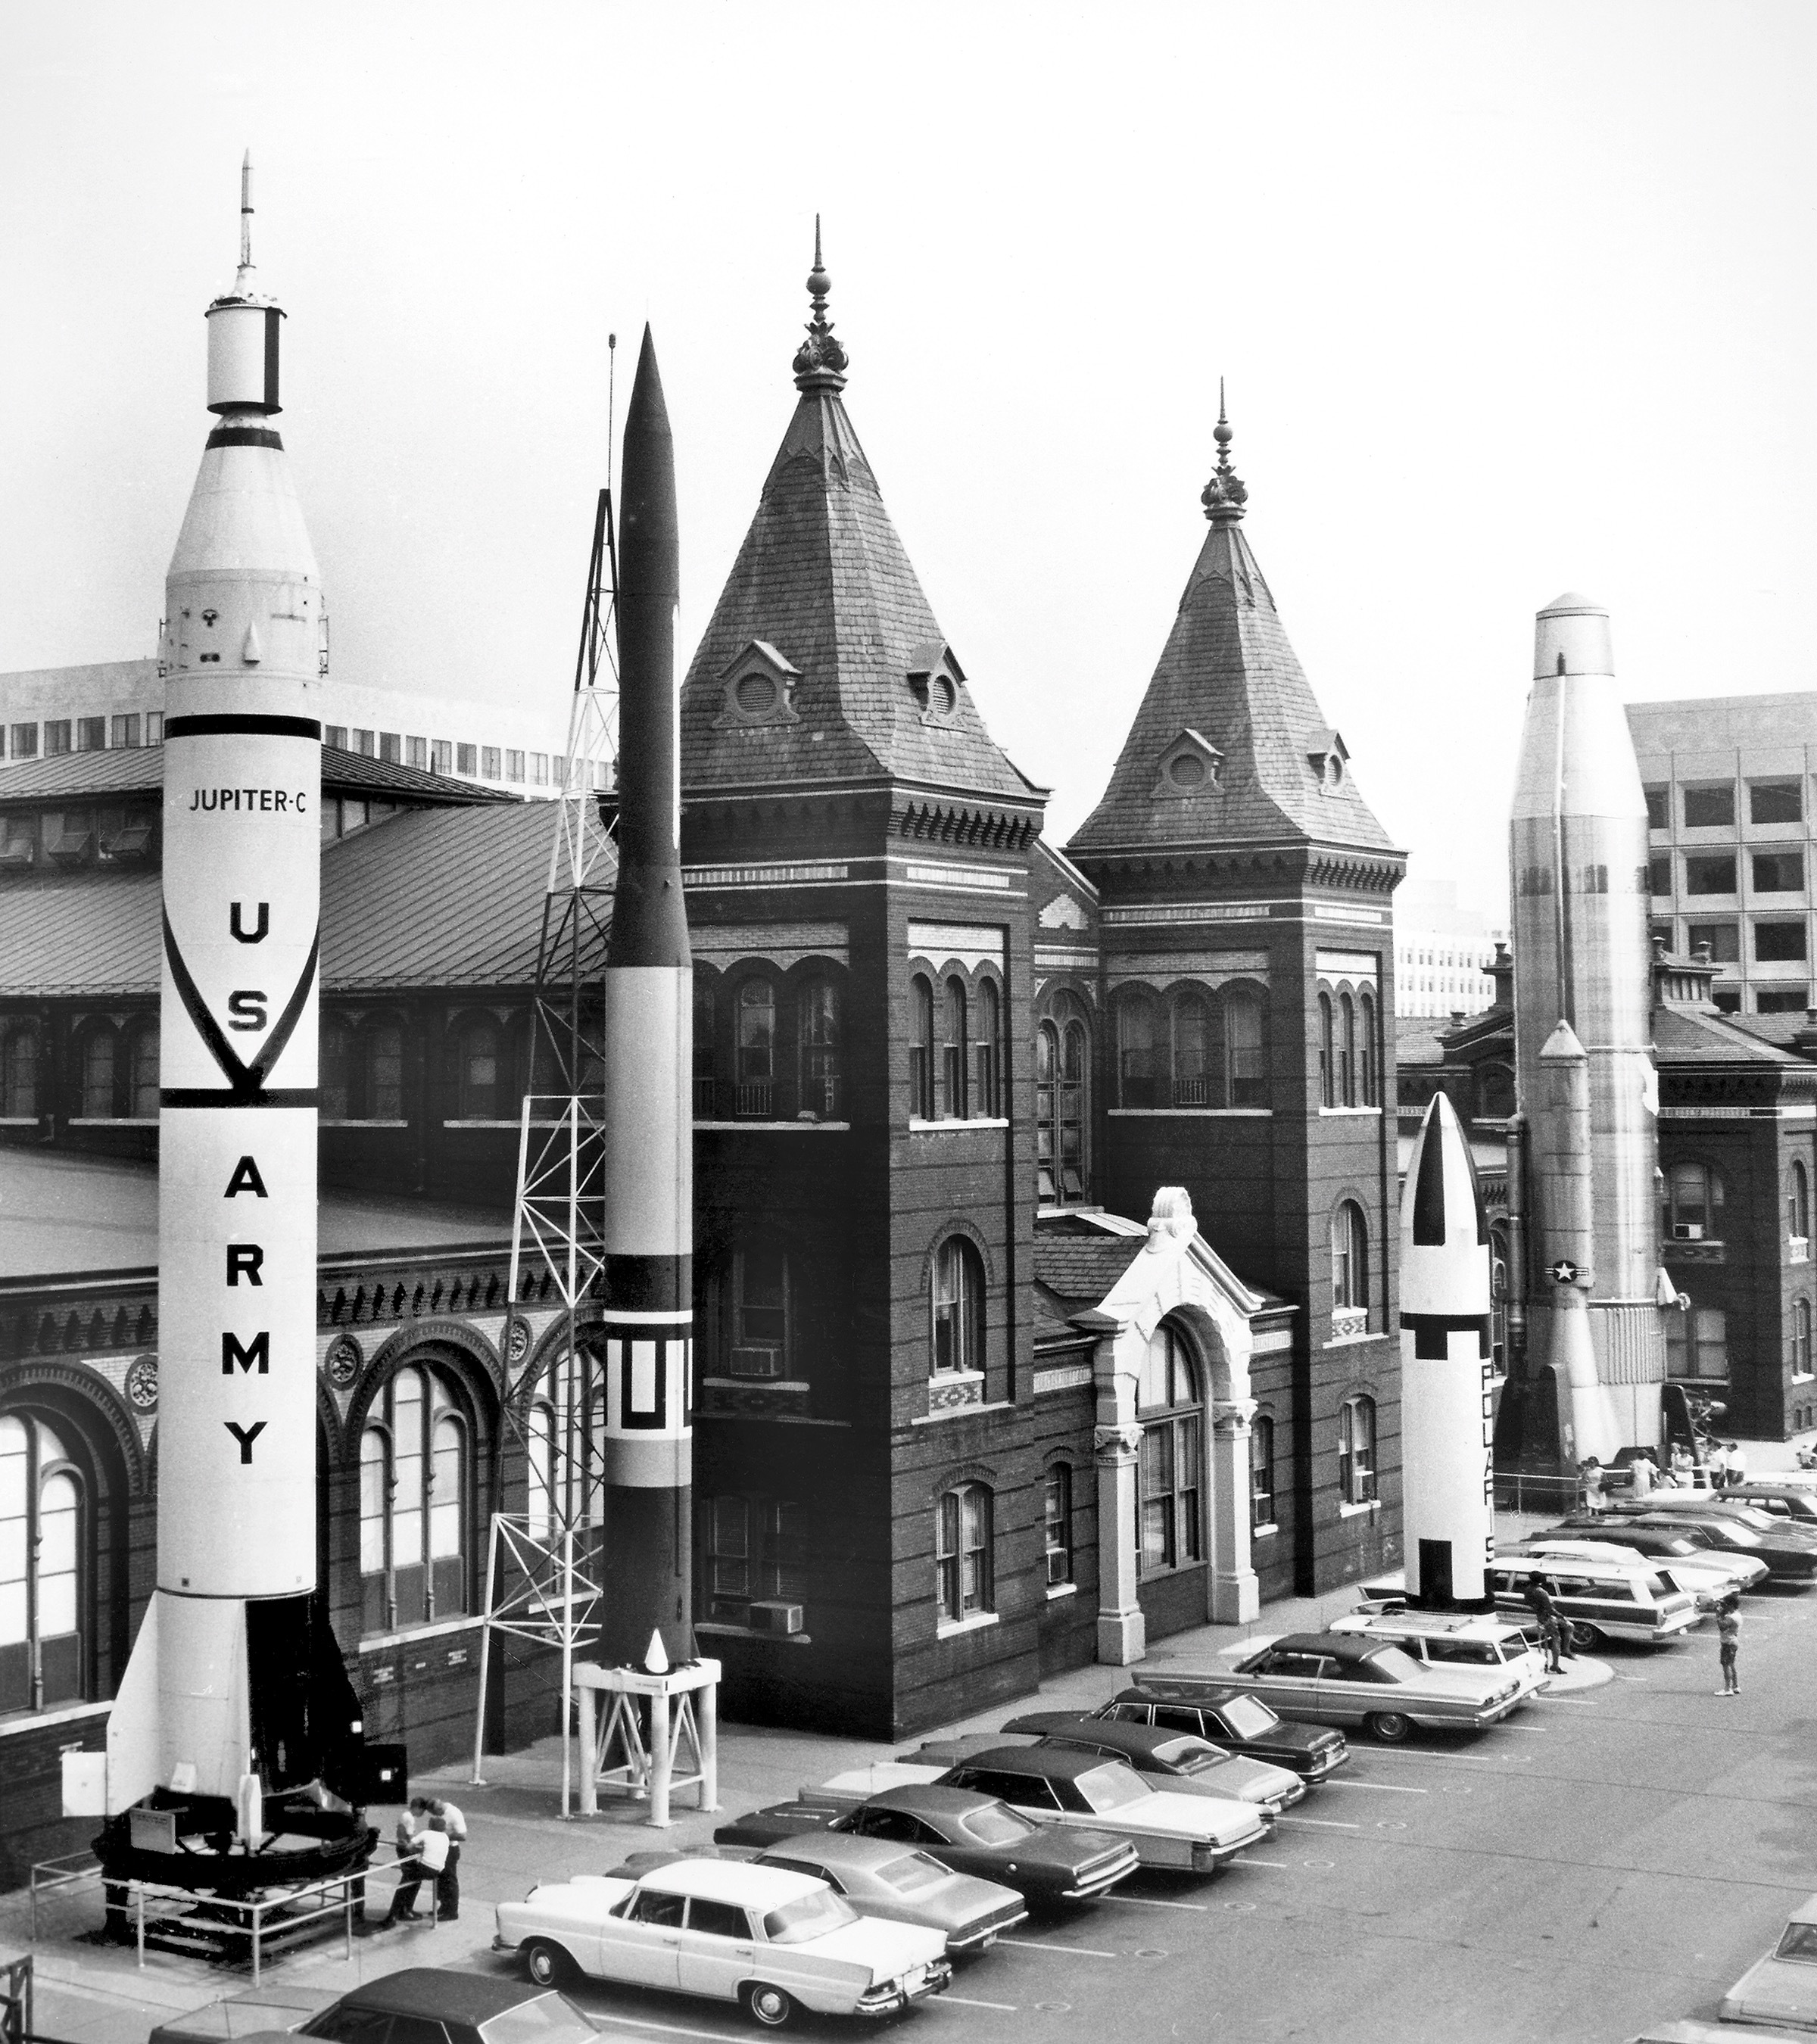 Arts and Industries Building Rocket Row